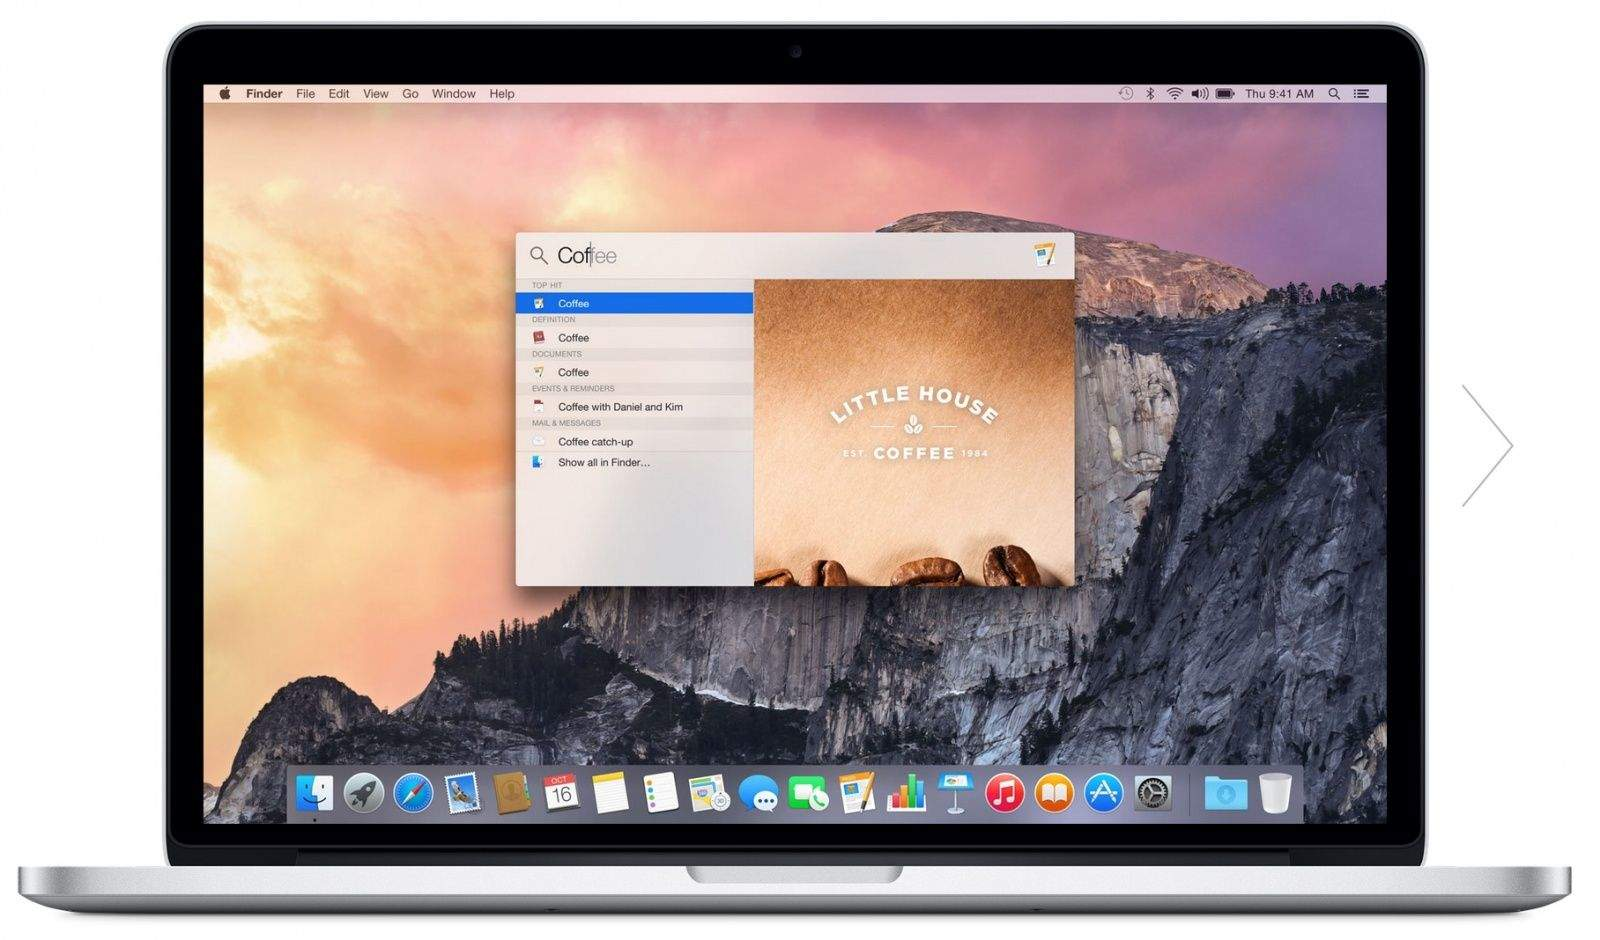 Keep Os X Yosemite From Sending Spotlight Data To Apple